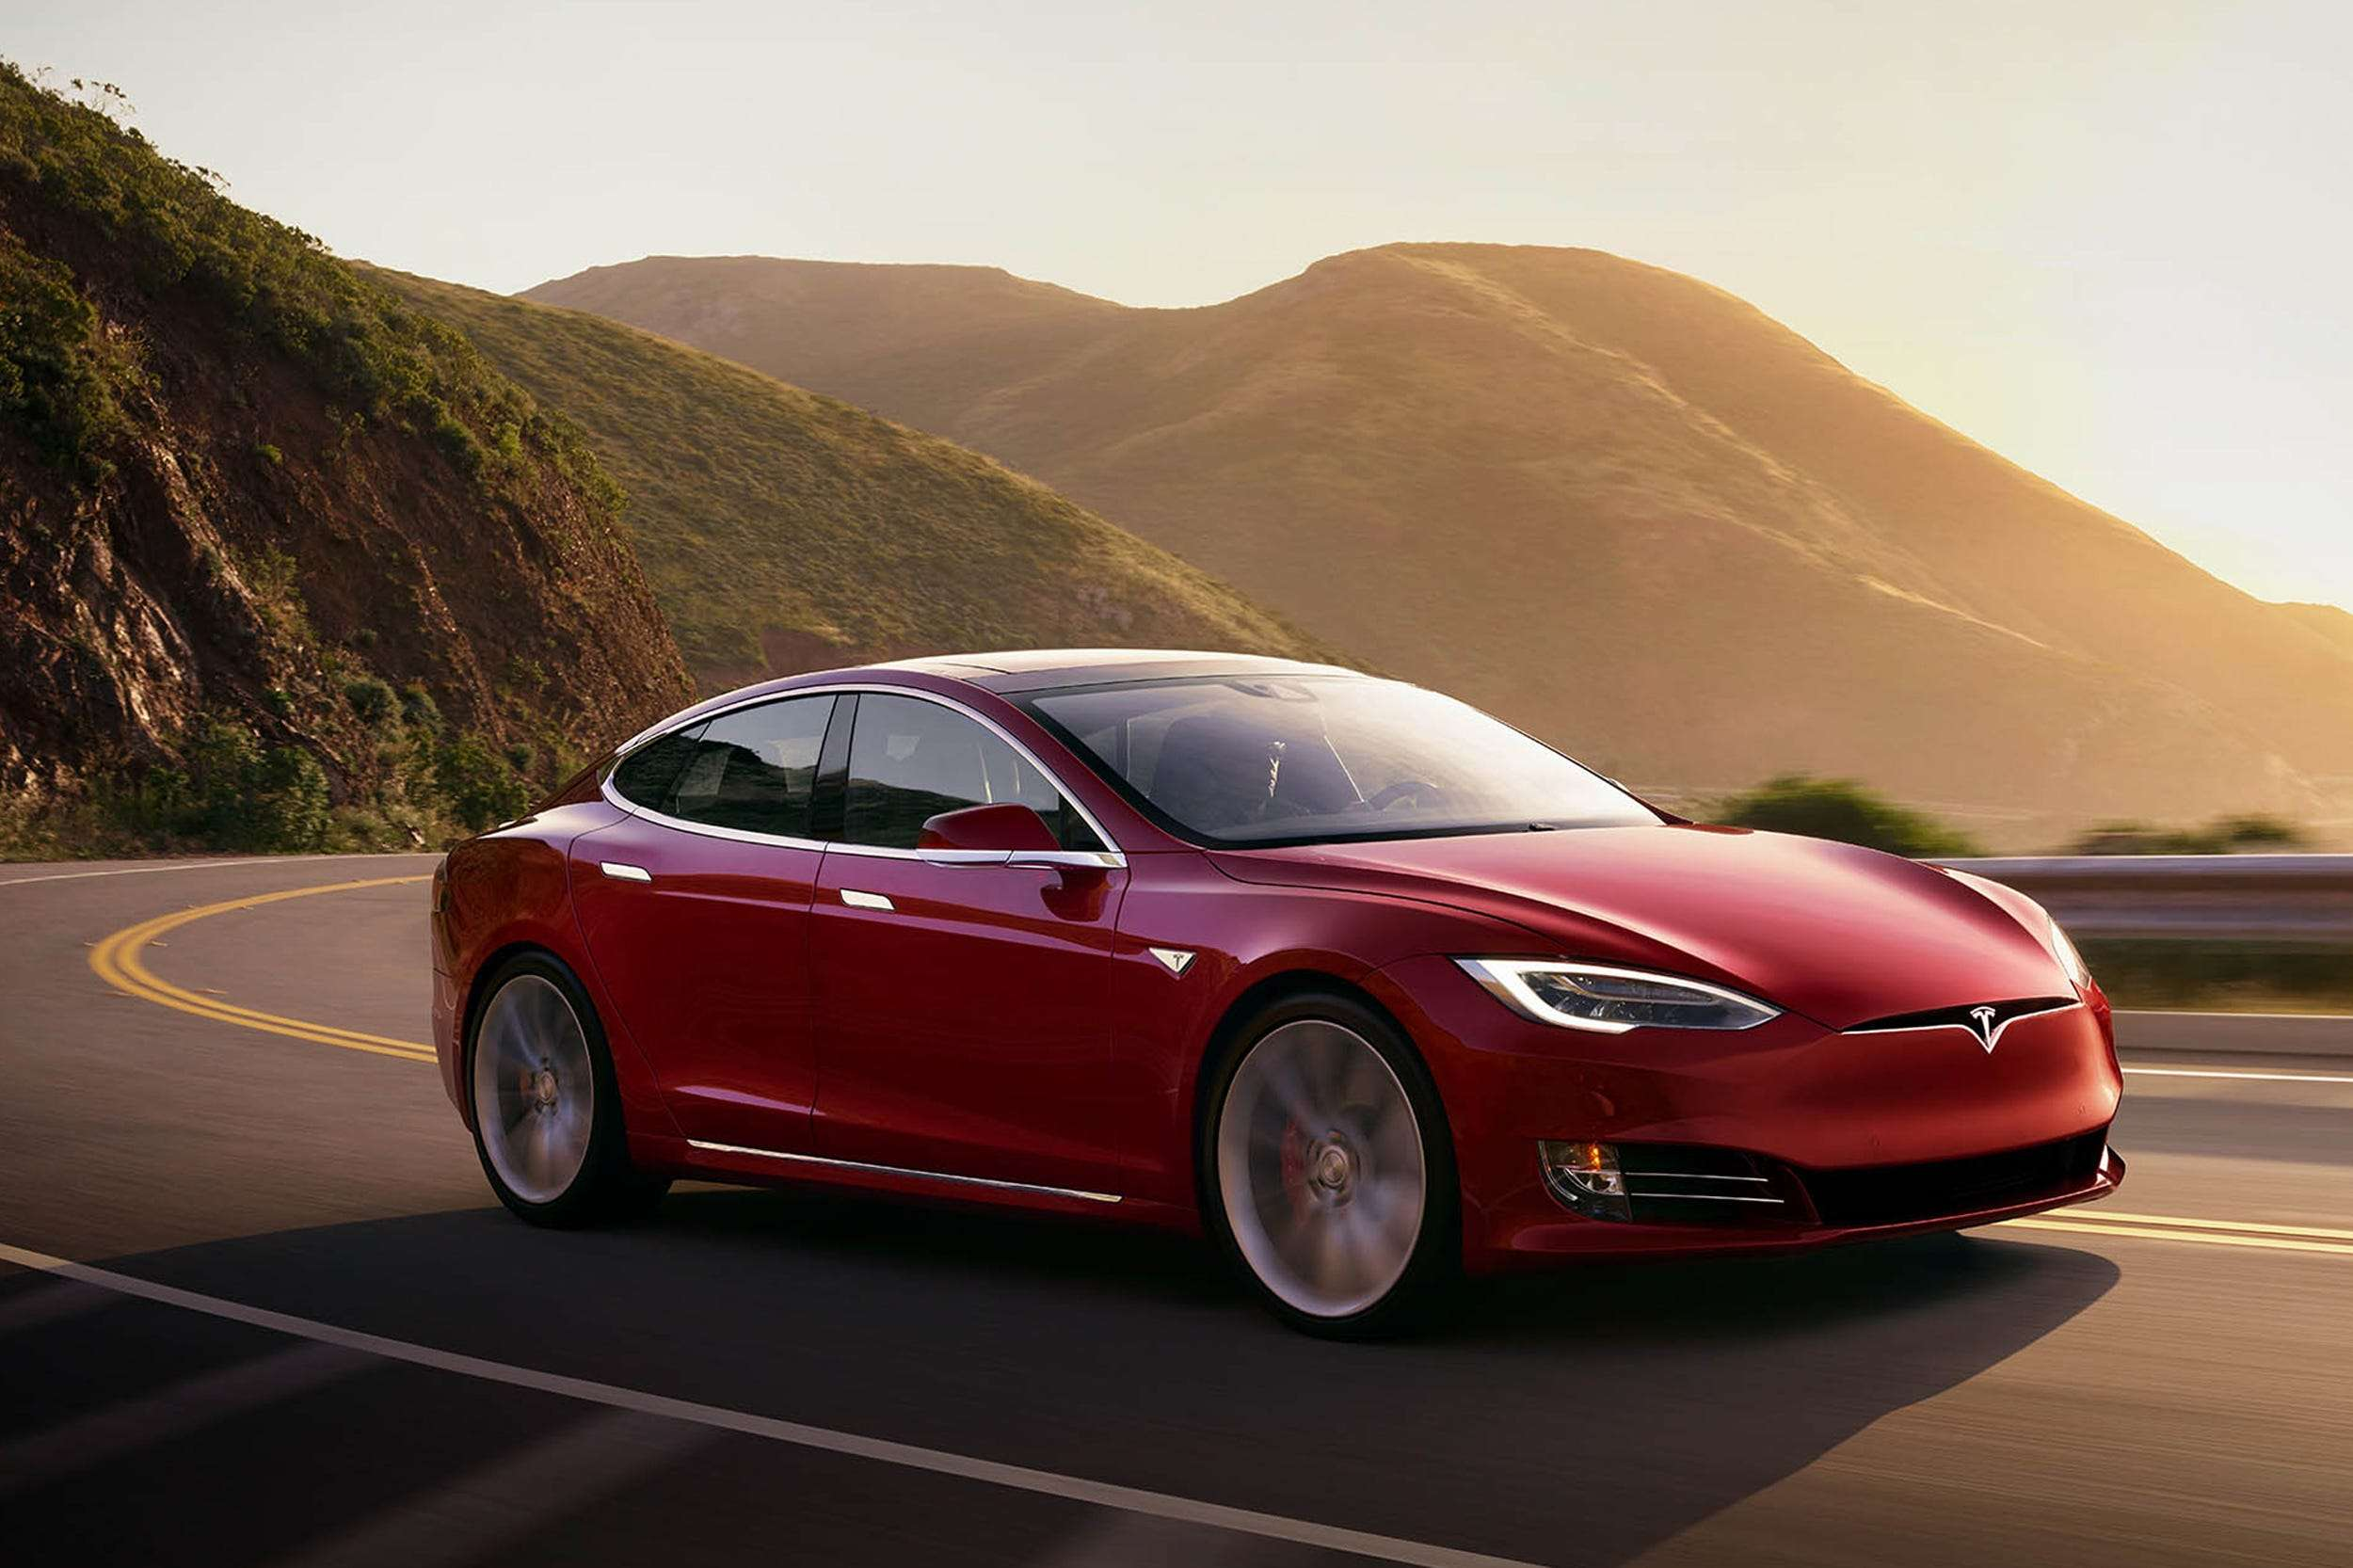 The Tesla Model S Plaid has arrived - here's how it stacks up to every  other Tesla | Business Insider India